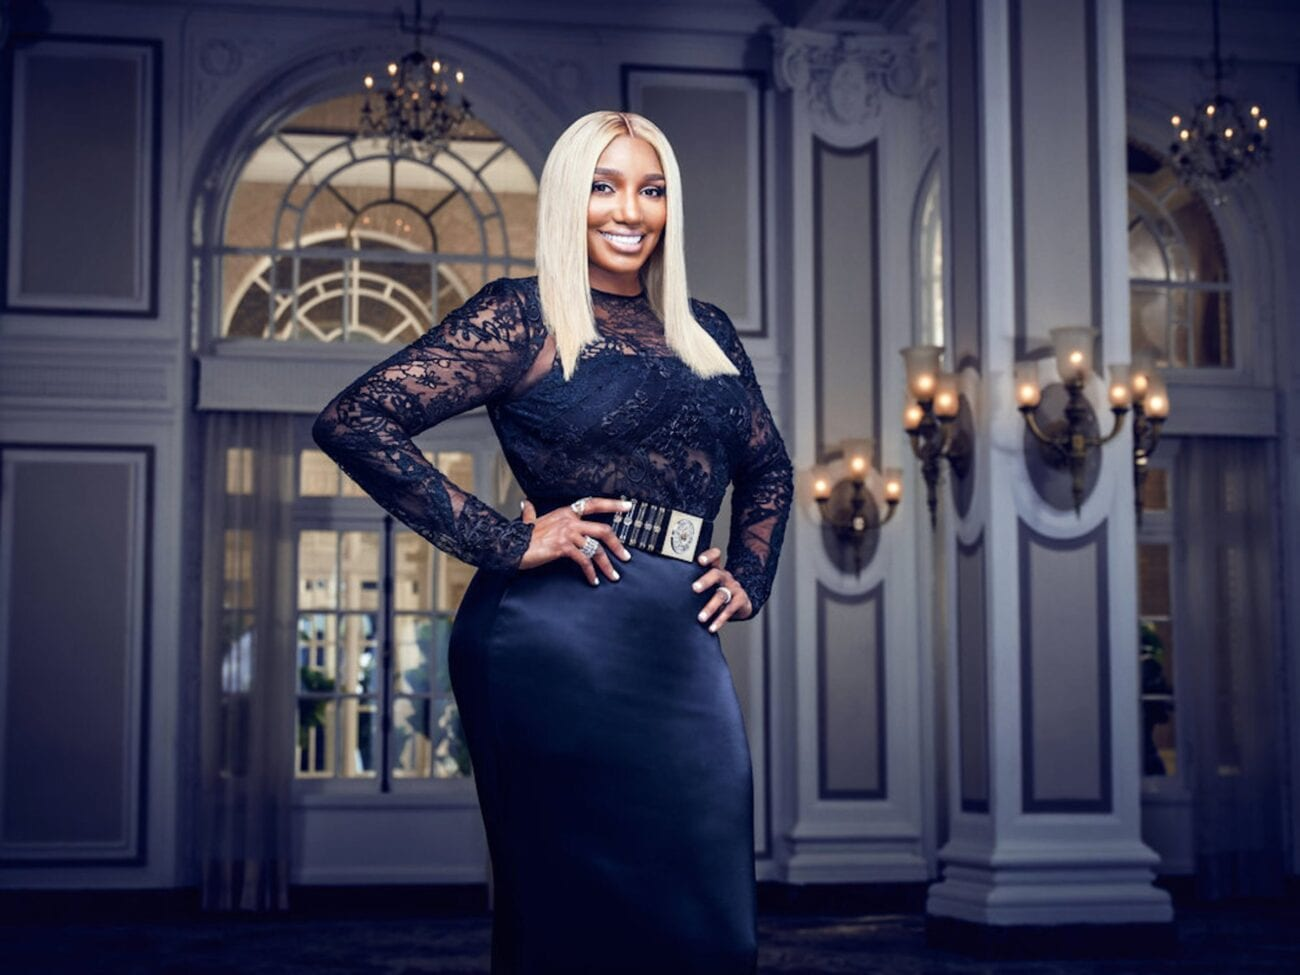 NeNe Leakes has announced she's leaving 'The Real Housewives of Atlanta'. Here's everything you need to know about her departure.